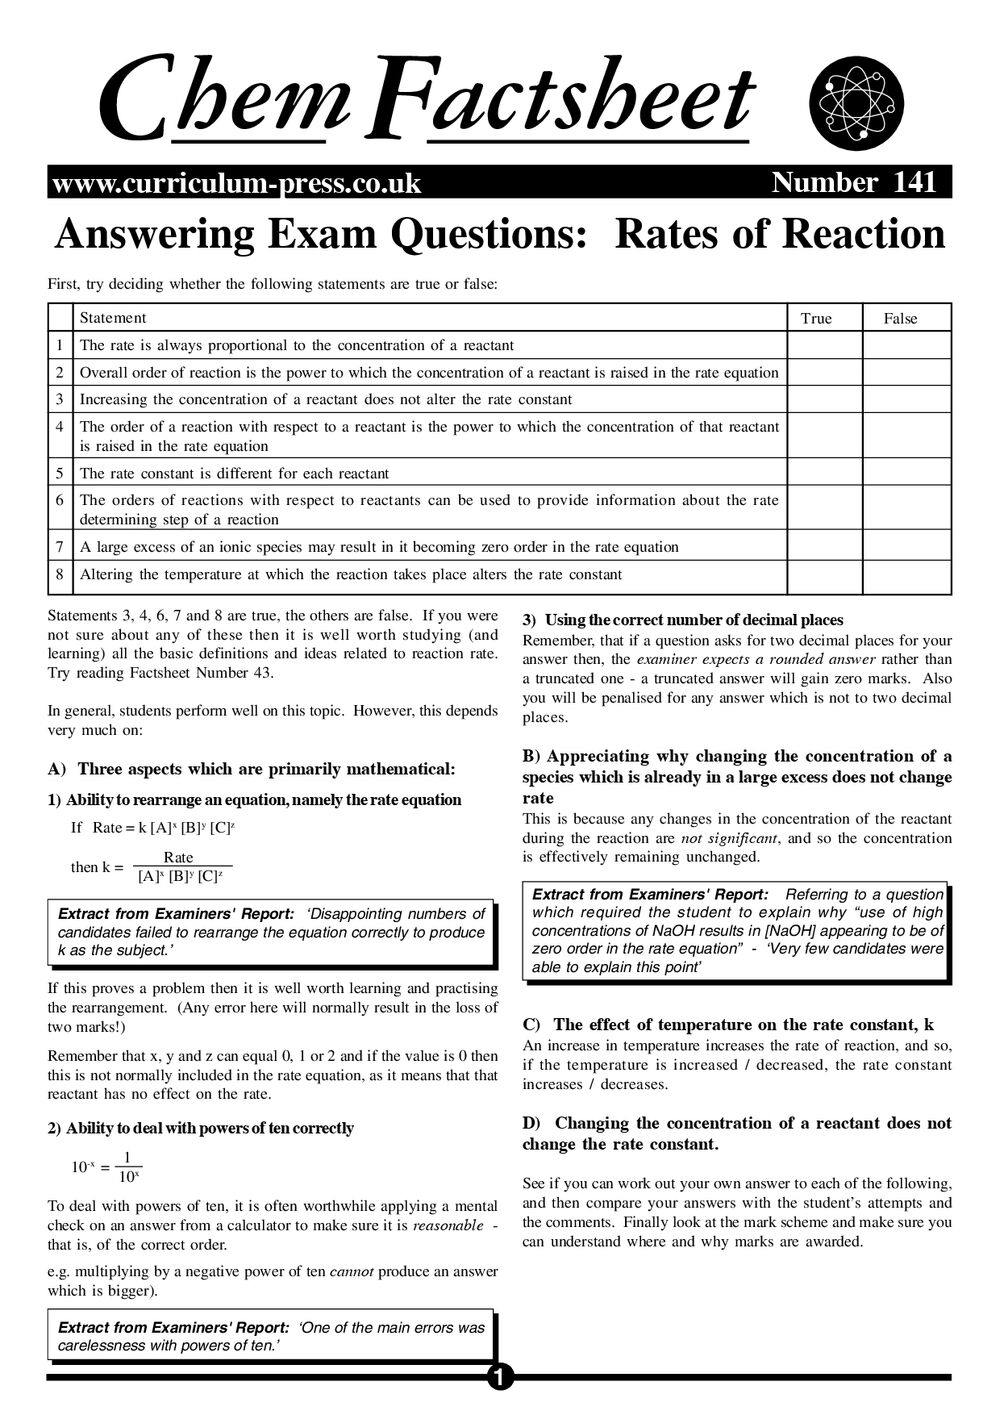 Answering Exam Questions: Rates of Reaction - Curriculum Press